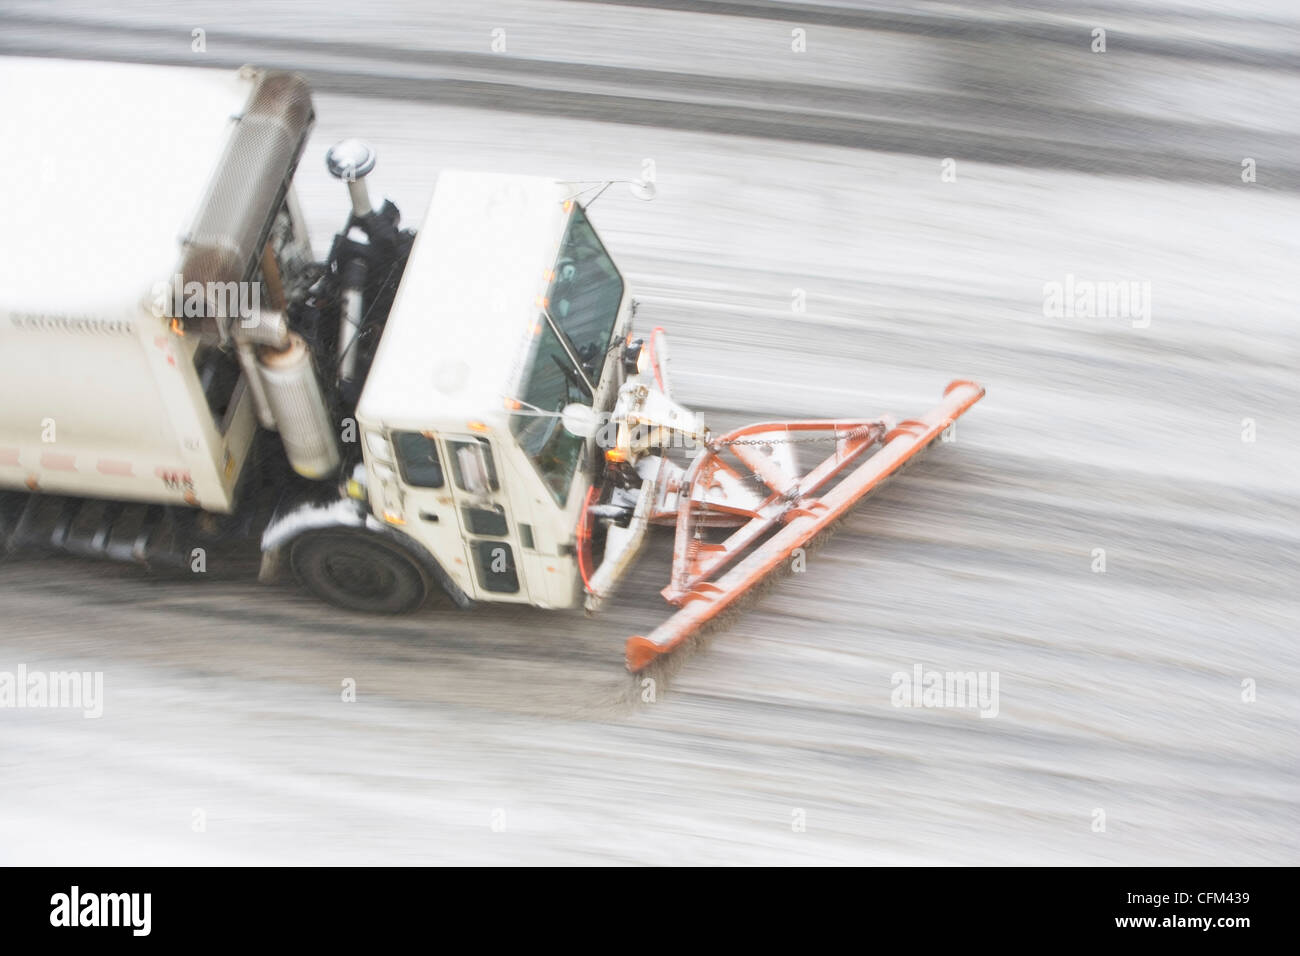 USA, New York State, New York City, high angle view of Snowplow plowing snow out of street - Stock Image